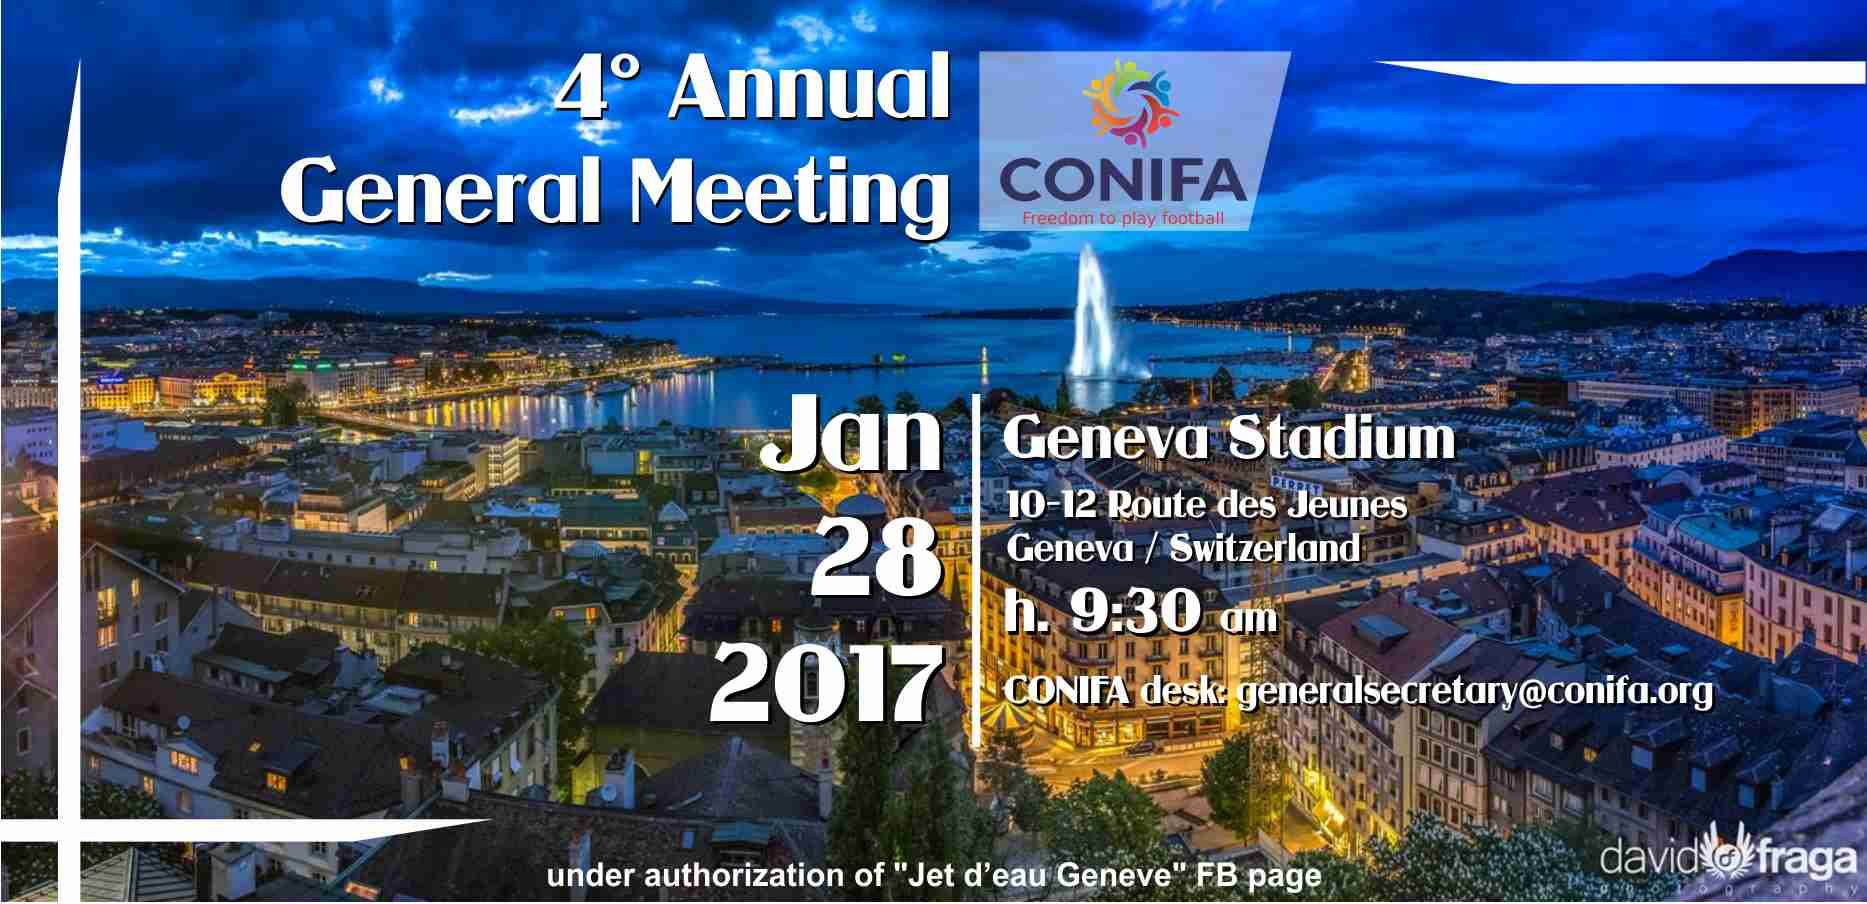 ConIFA announce the next AGM 2017